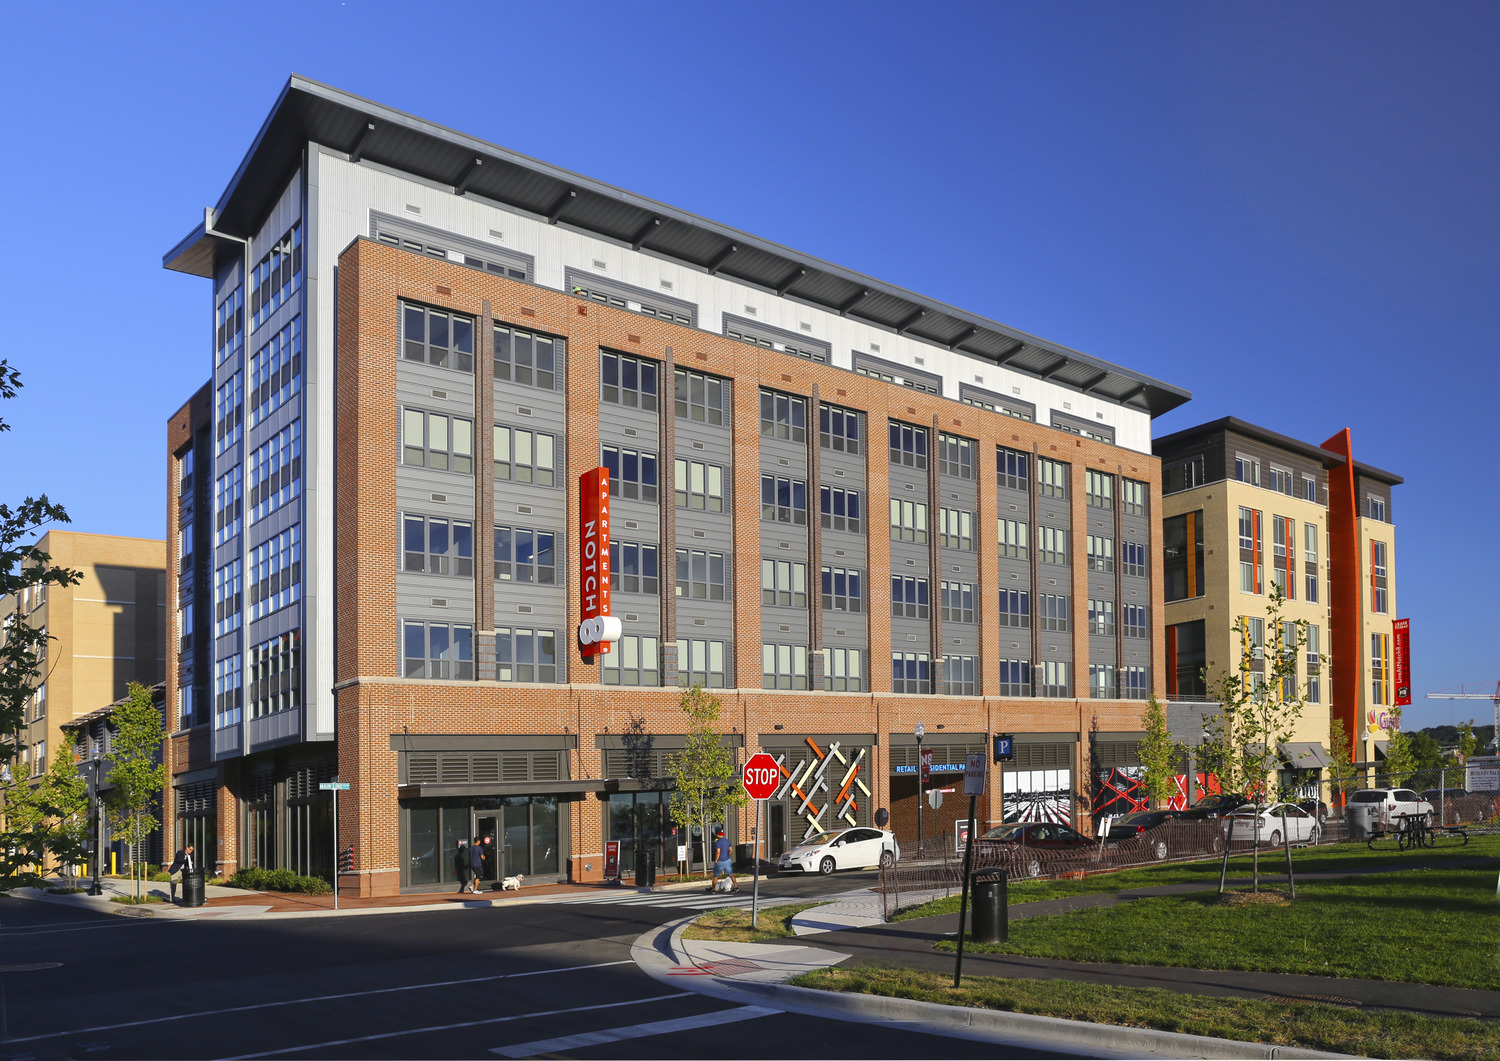 CBG builds Notch 8 at The Exchange at Potomac Yard, a 253-Unit LEED®-Certified Residential Community with 69,900-SF Grocery in Alexandria, VA - Image #5